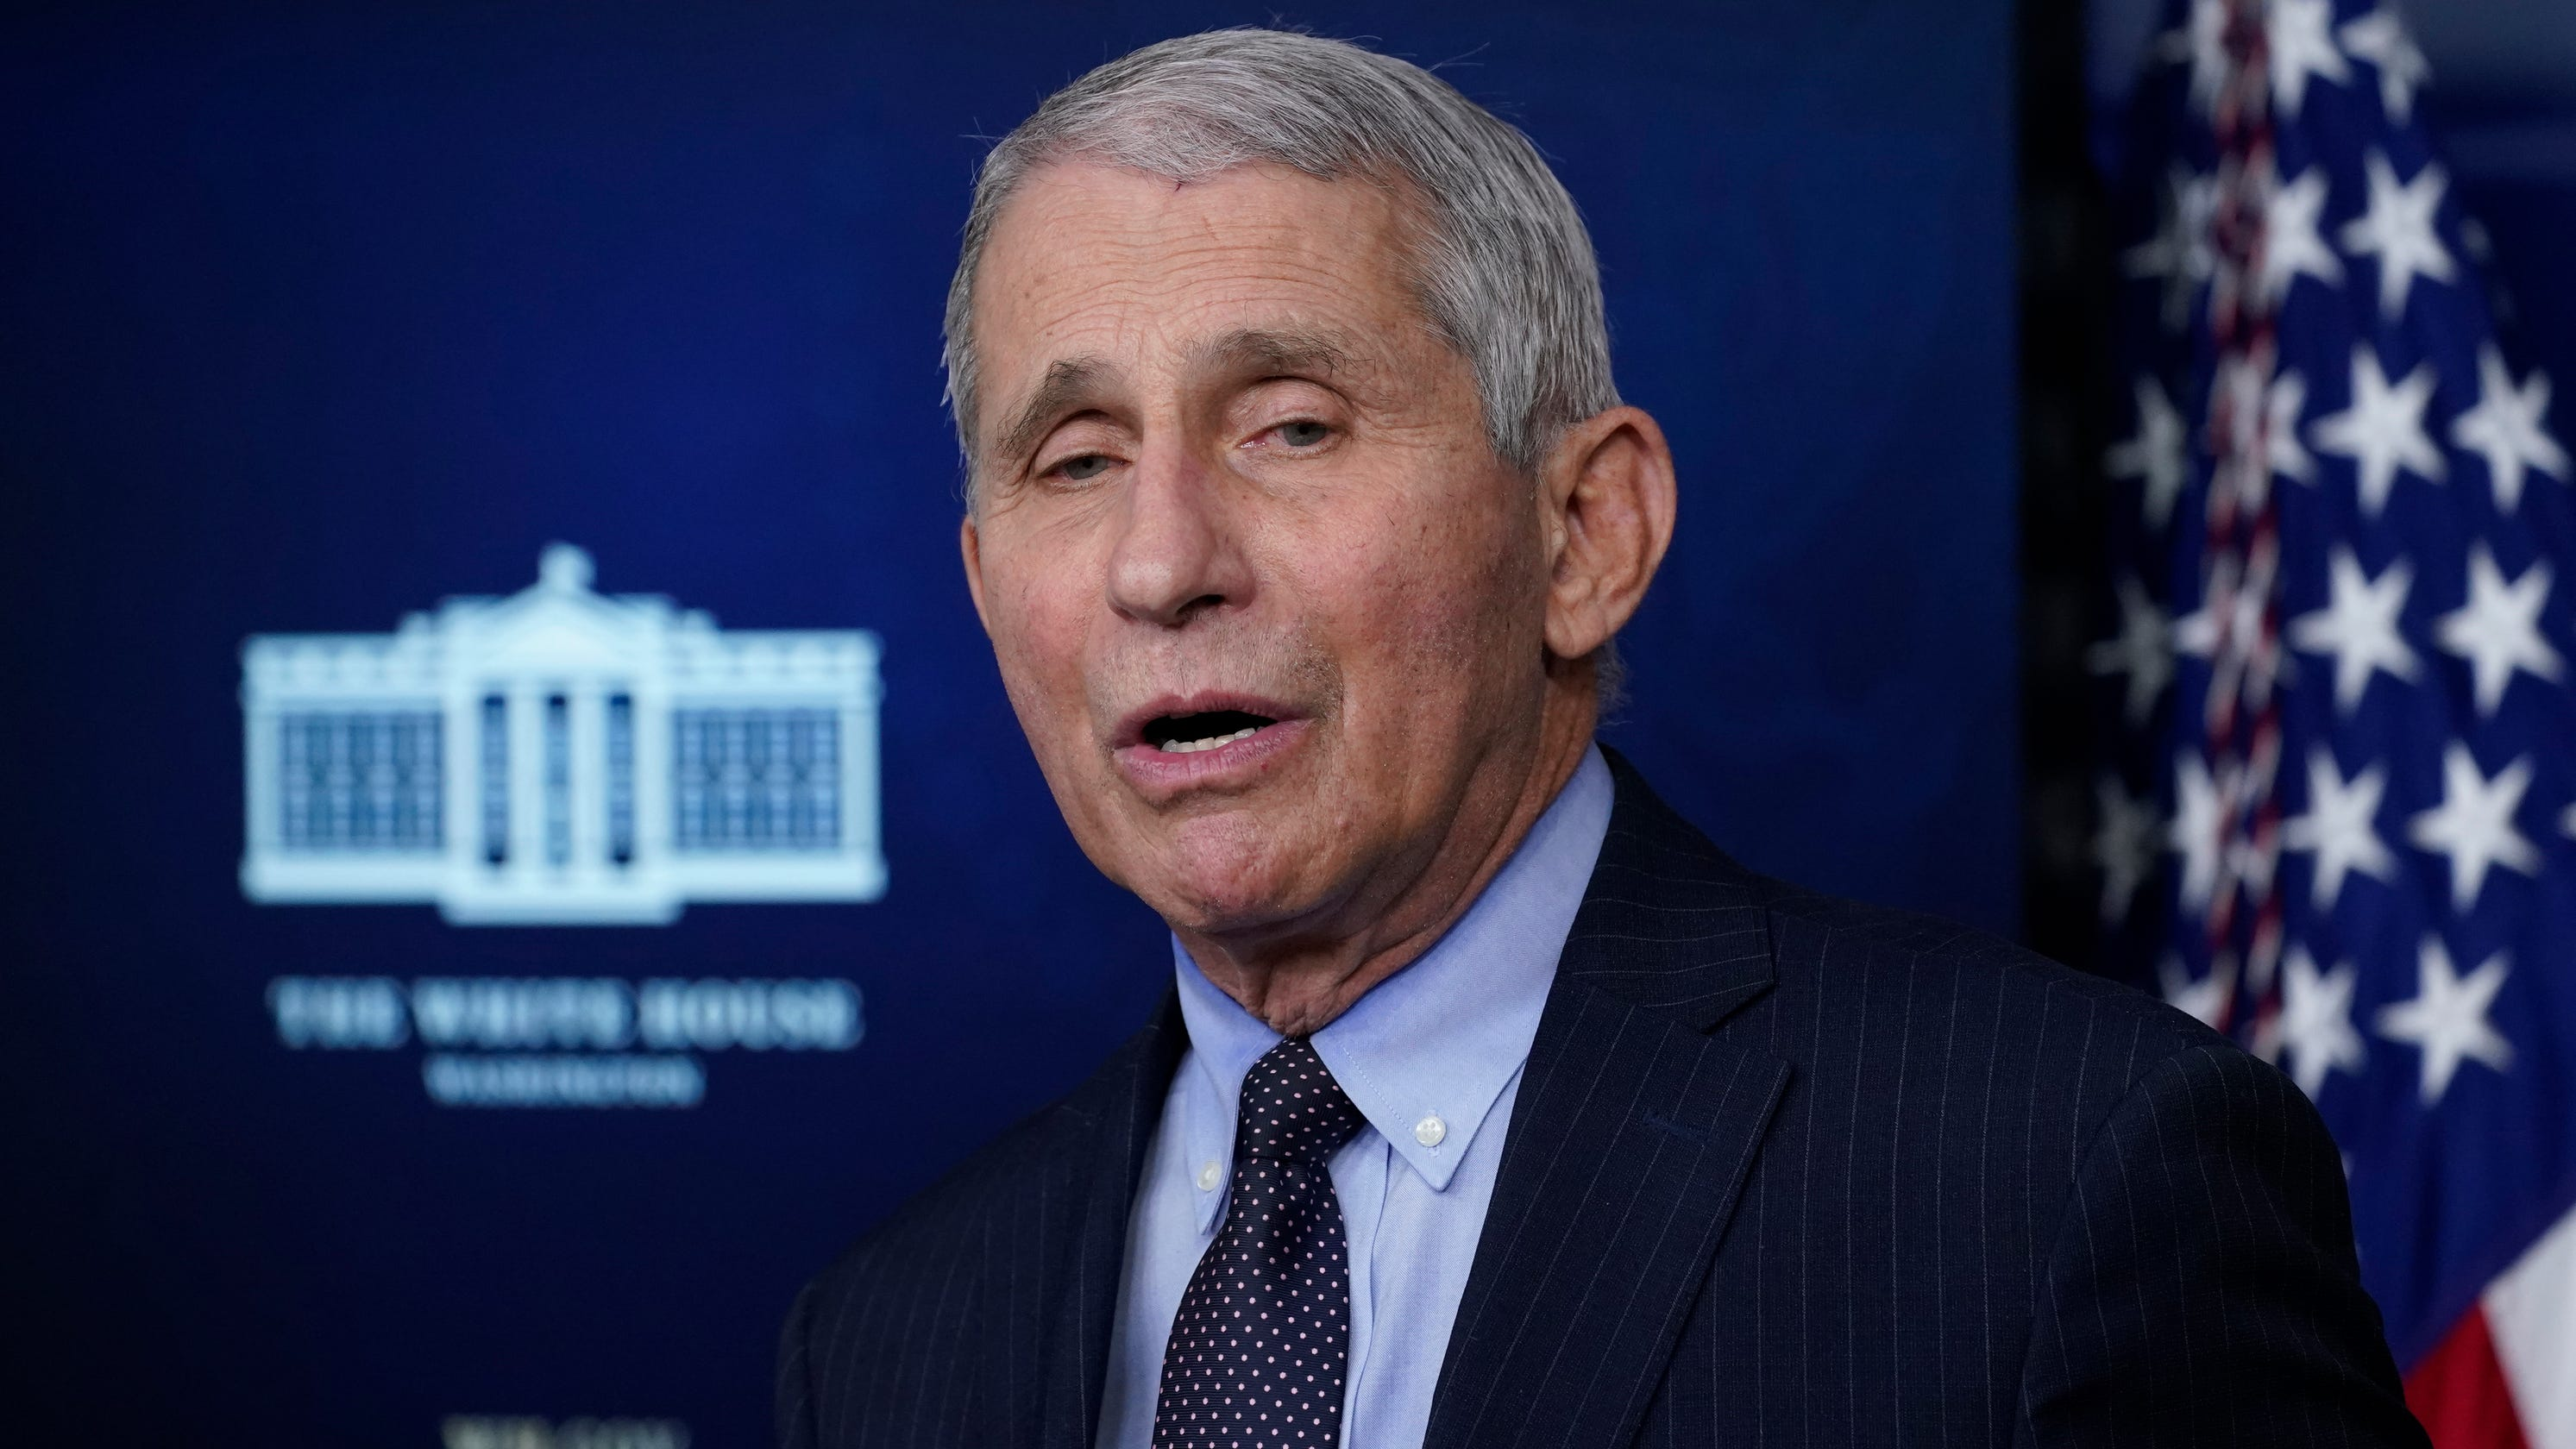 Dr. Anthony Fauci aims to answer 'a lot of important questions' about 'COVID long-haulers' in new nationwide initiative - USA TODAY